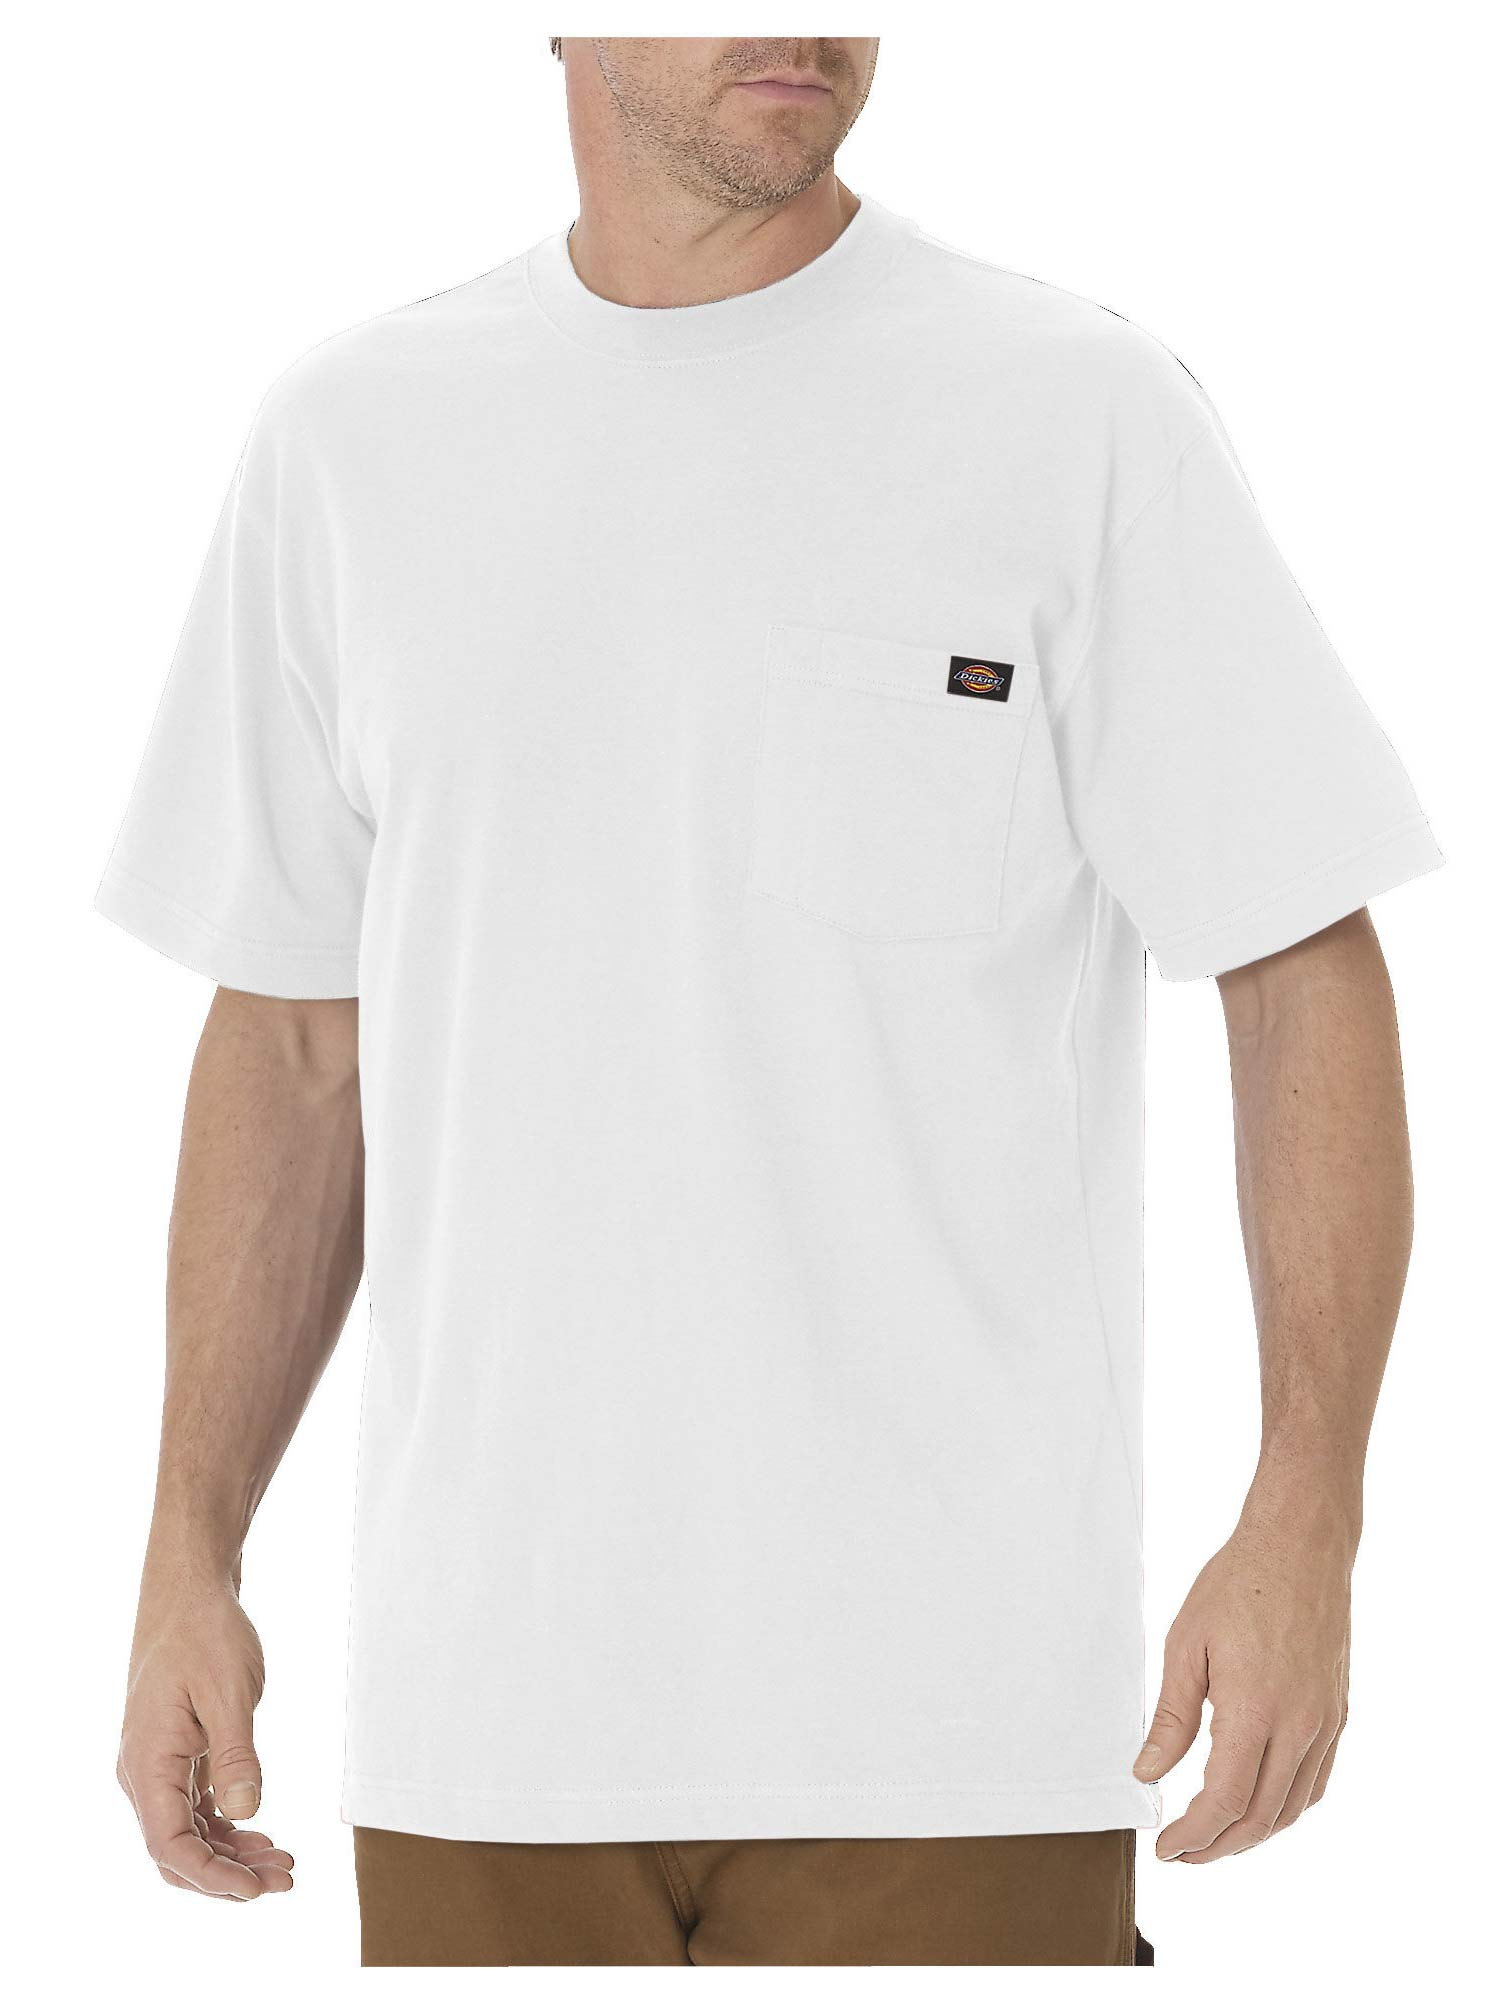 Dickies heavyweight t shirt with pocket ws450 for 6 dollar shirts coupon code free shipping